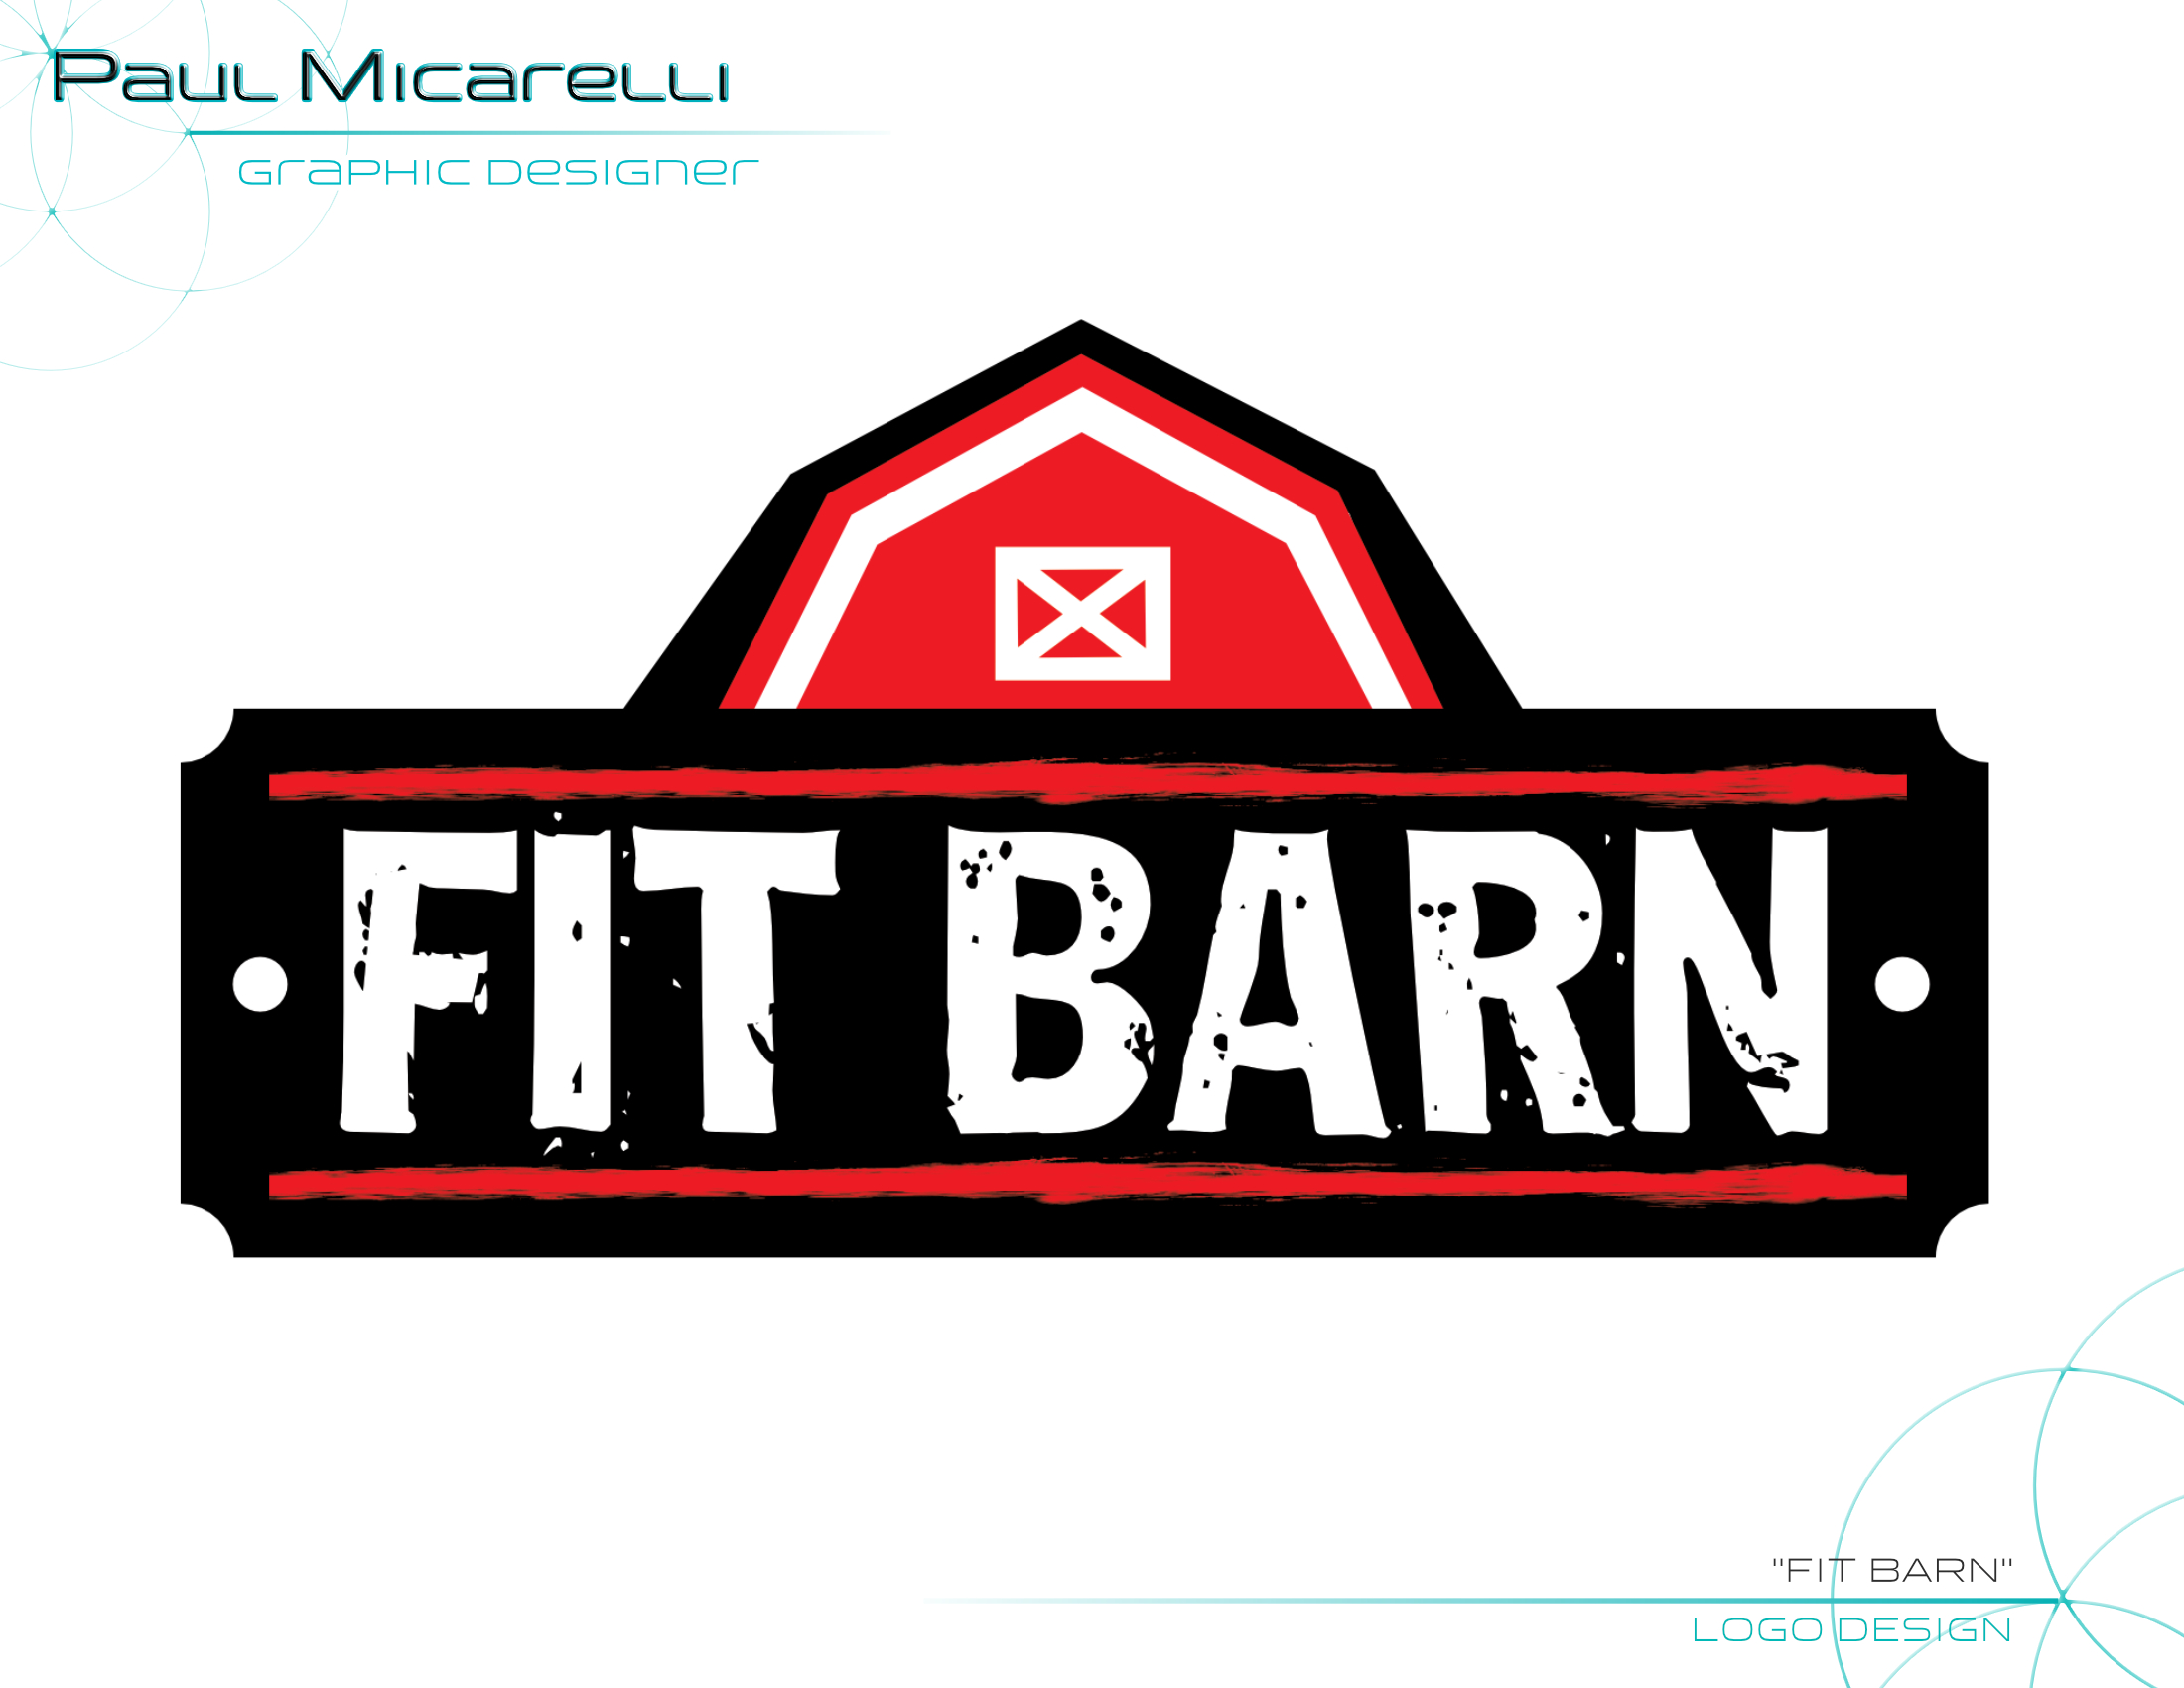 Paul-Micarelli-Fit Barn-Logo